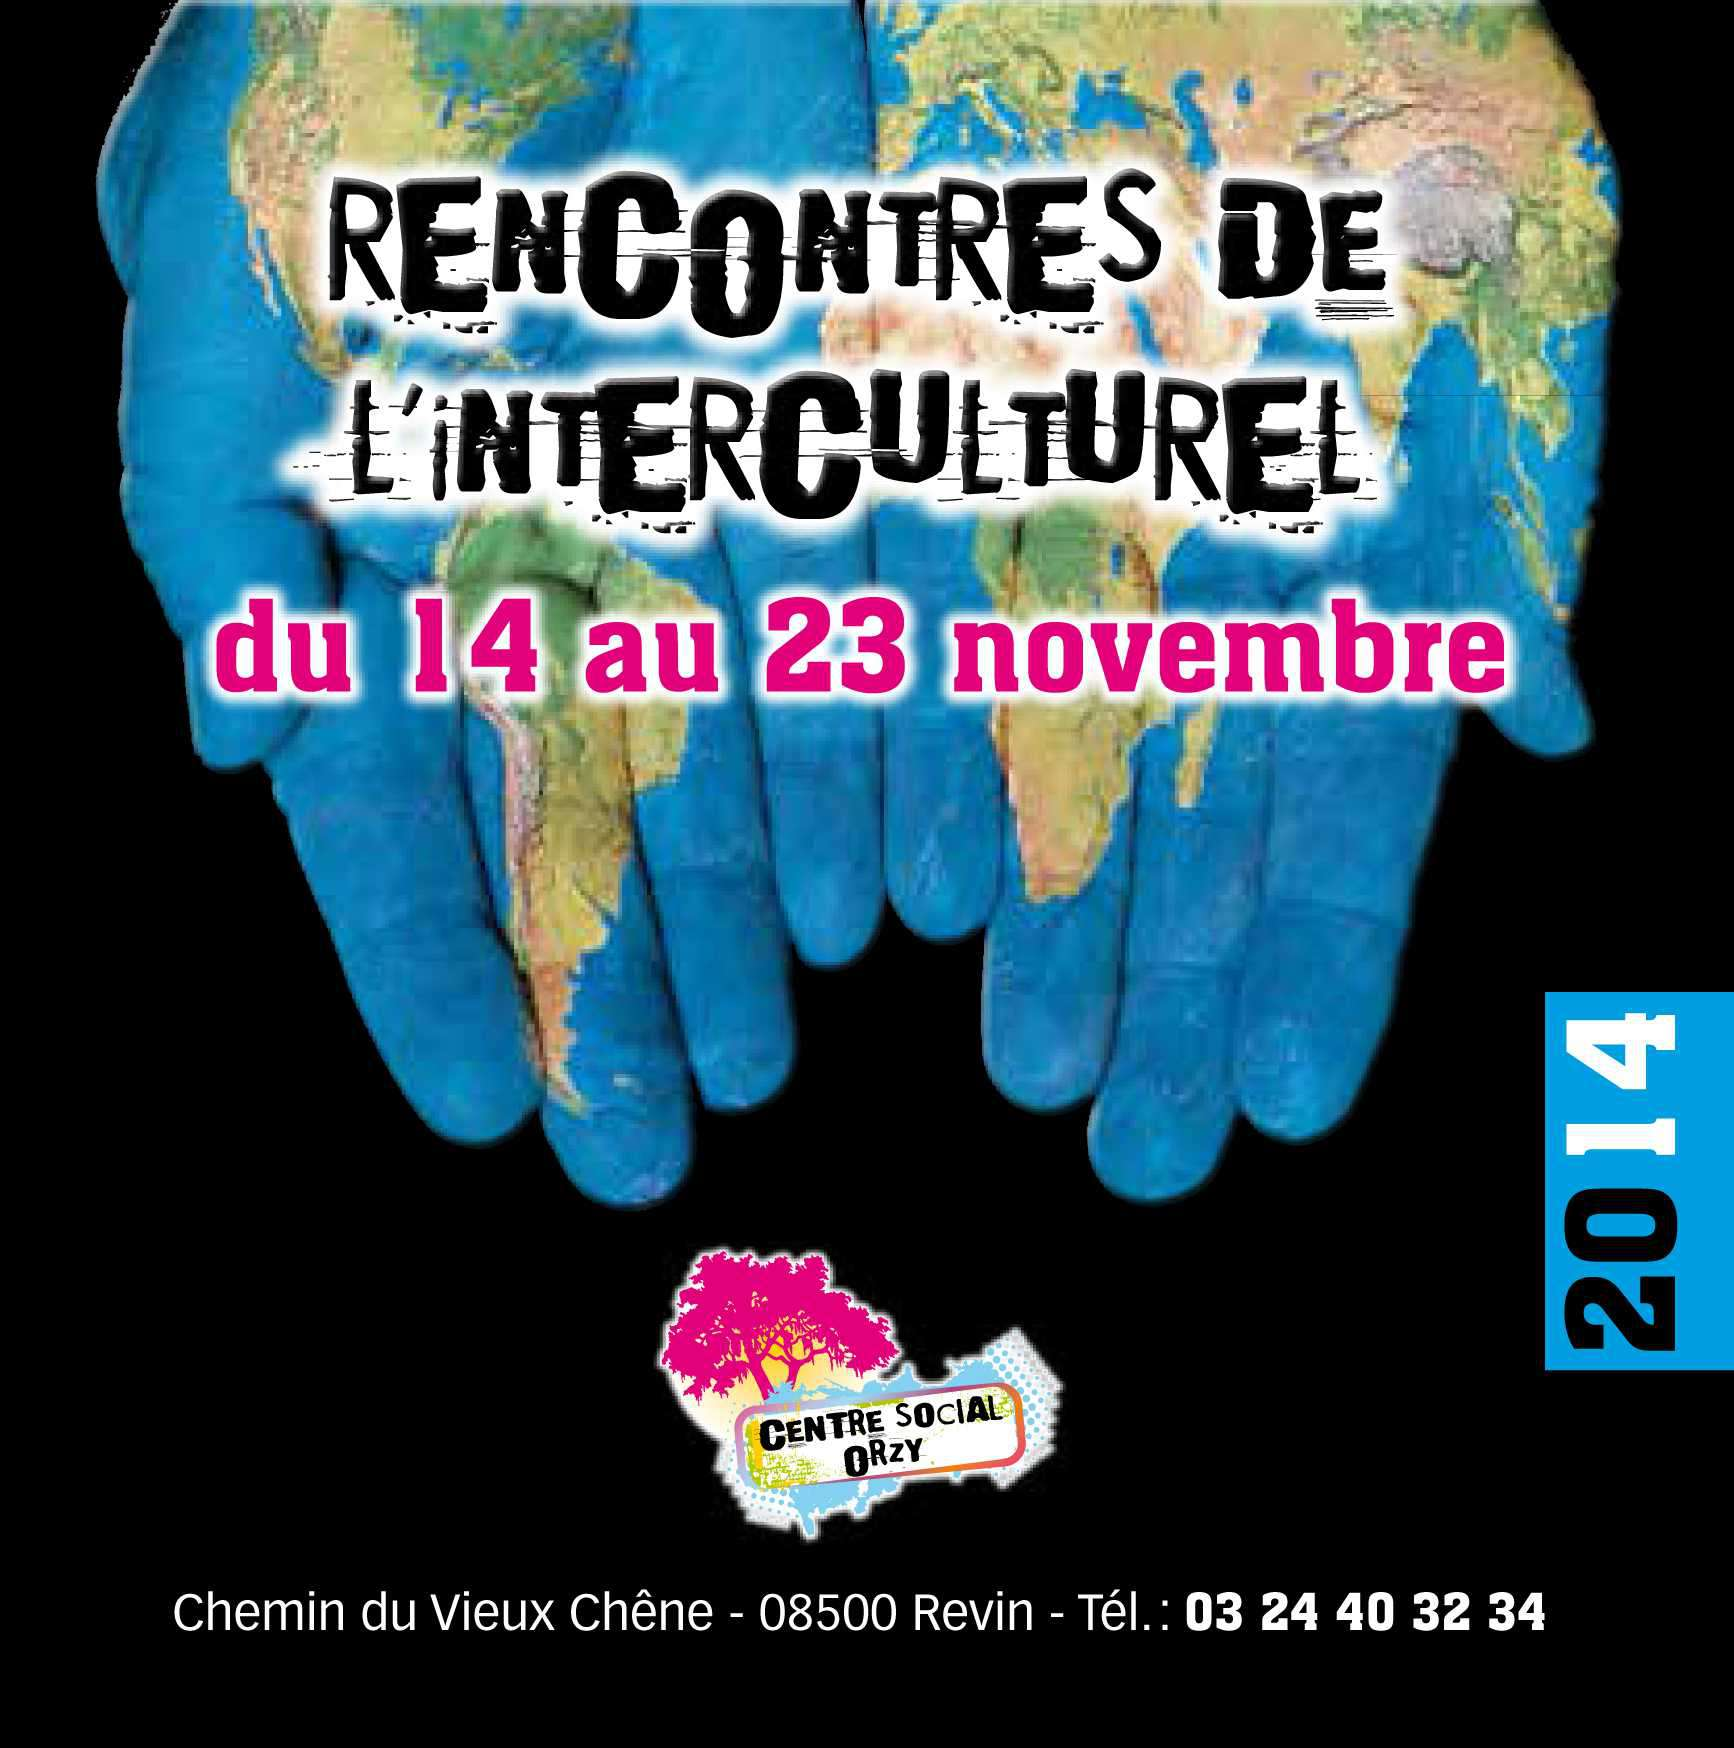 Jeu rencontre interculturelle